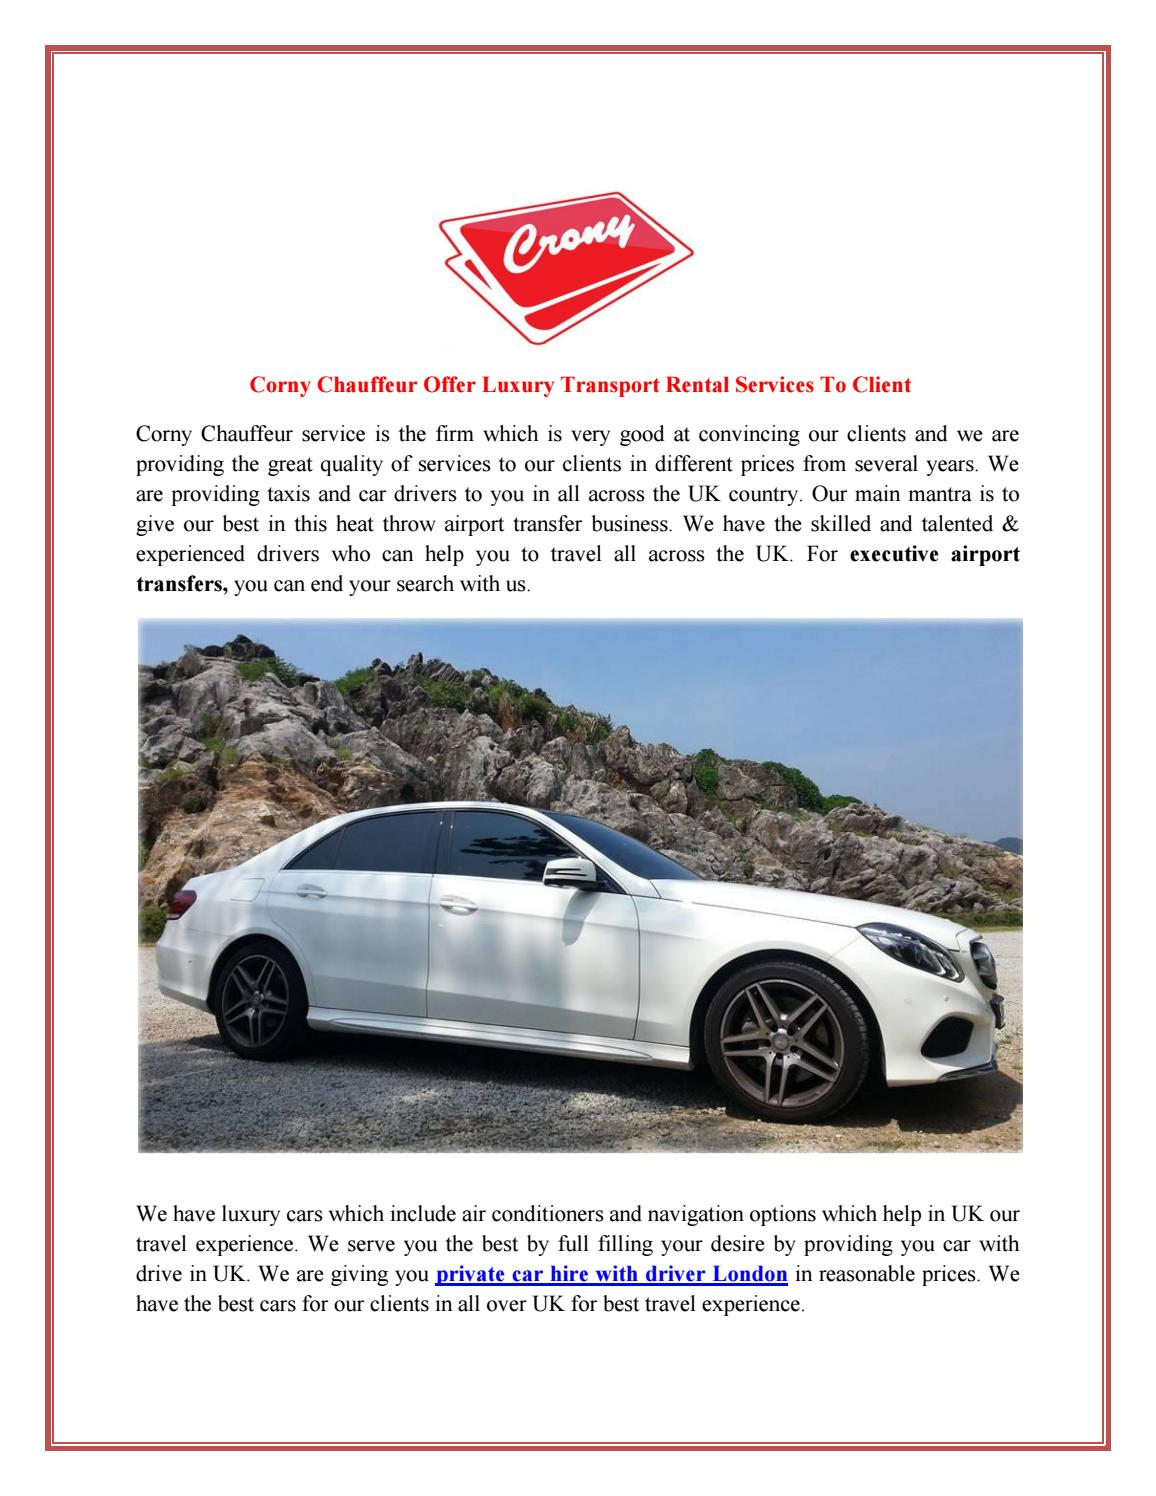 Corny Chauffeur Offer Luxury Transport Rental Services To Client By